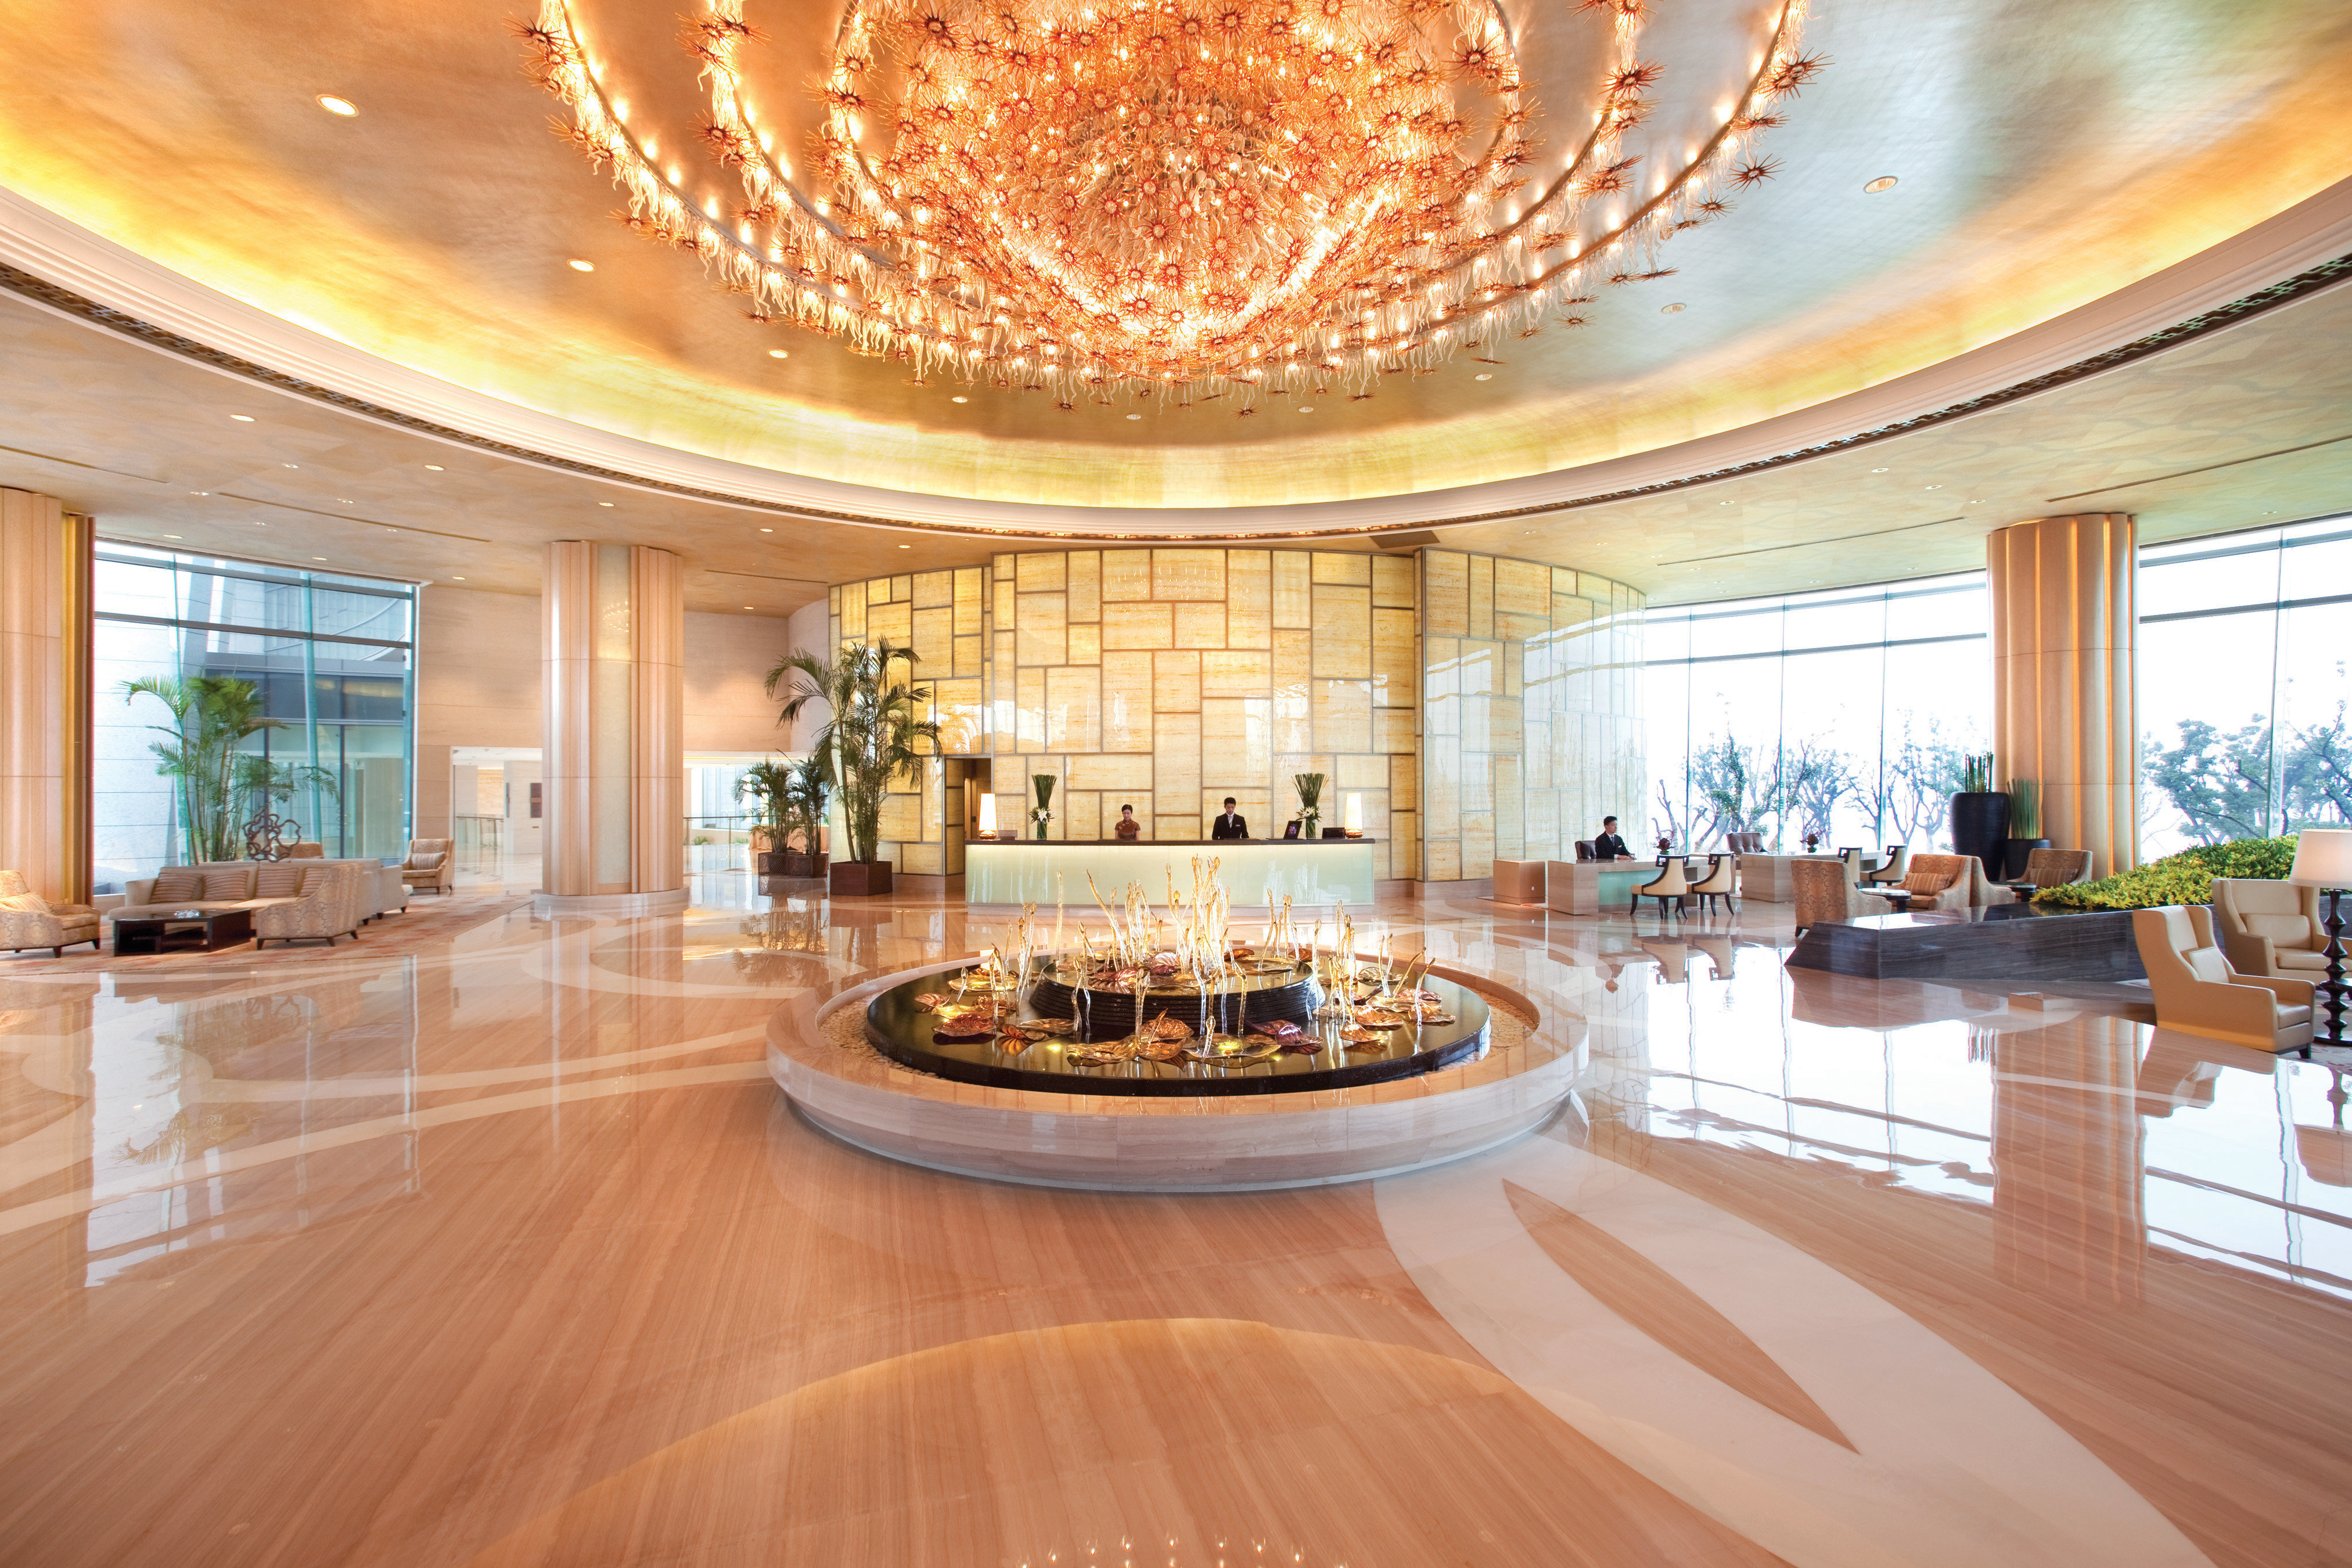 Lobby Lounge Luxury property building mansion home Dining living room function hall wood flooring ballroom flooring convention center Island